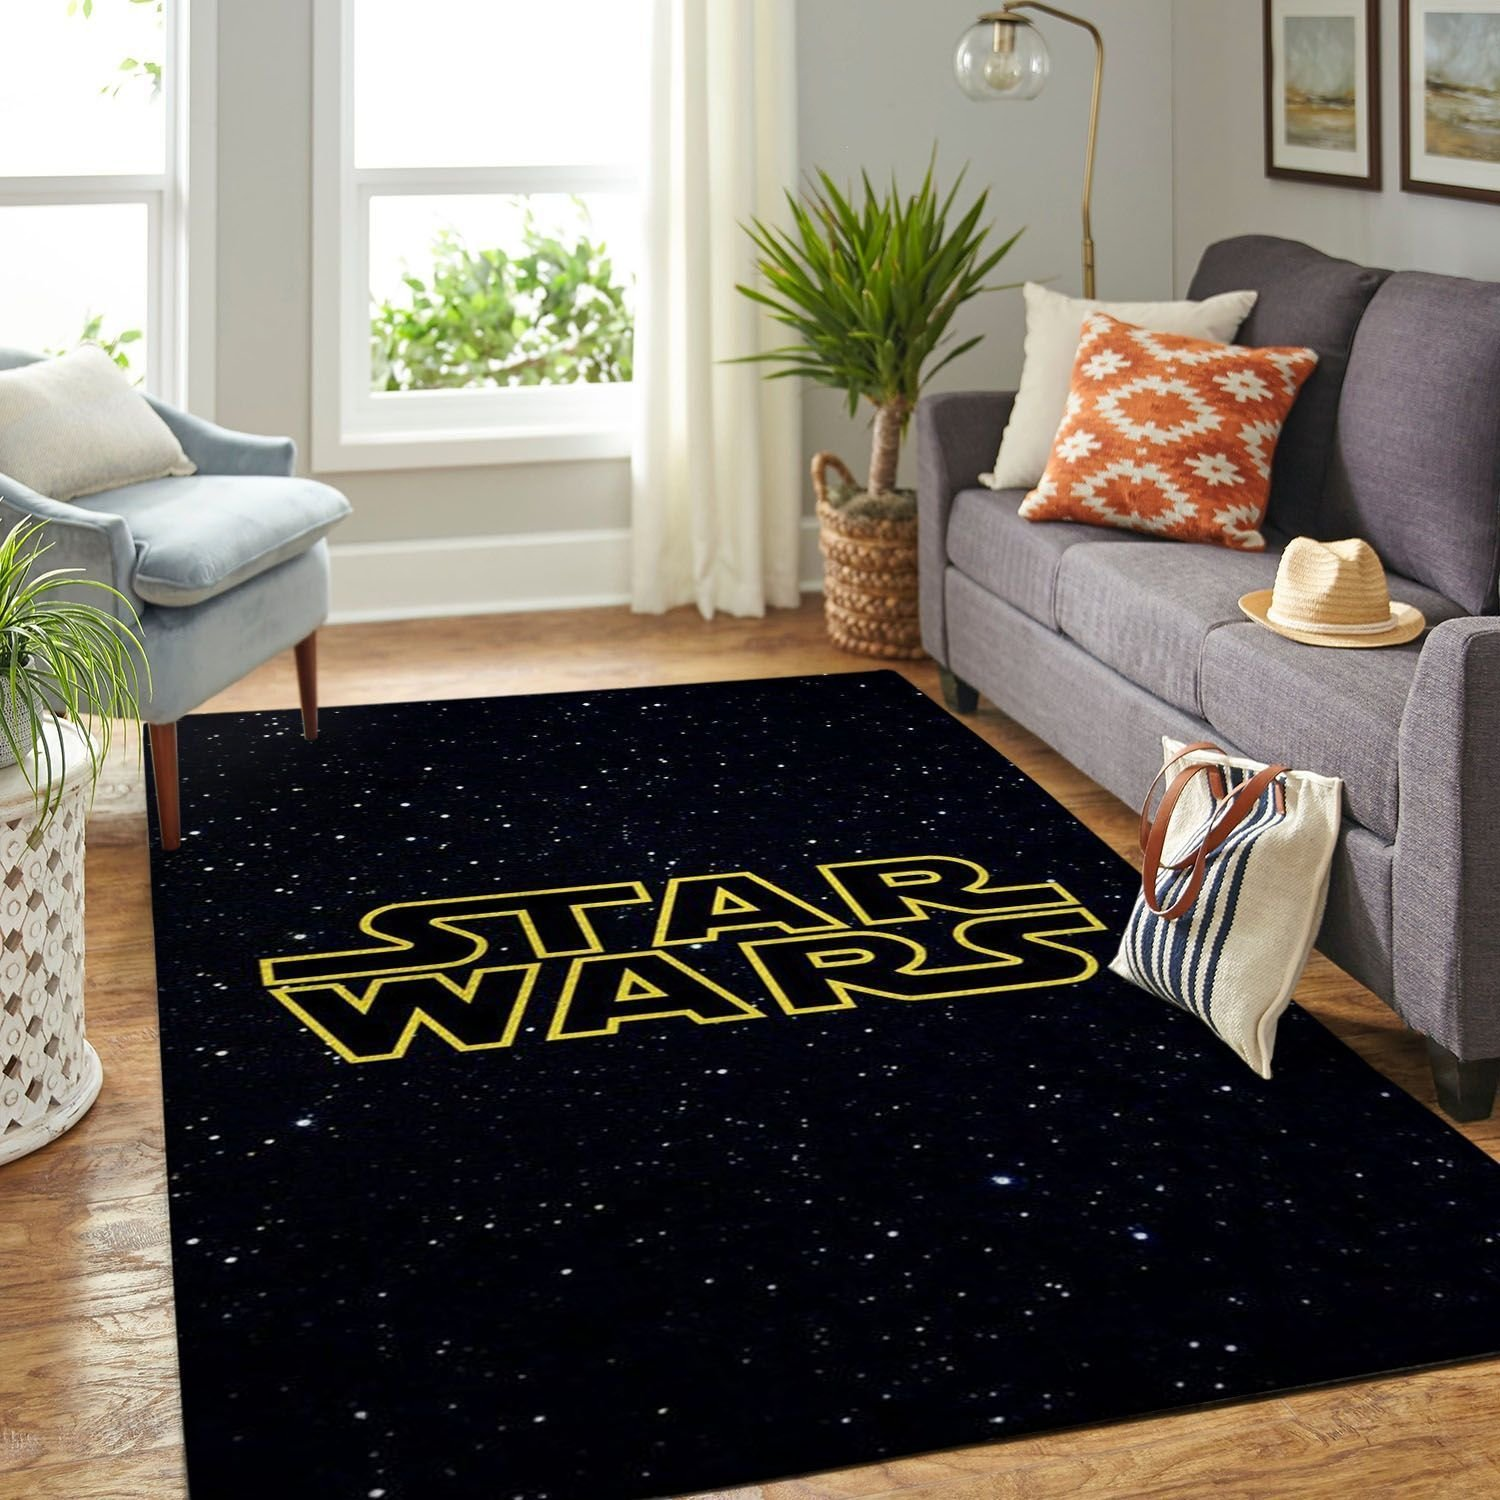 Amazon Starwars Living Room Area No6658 Rug